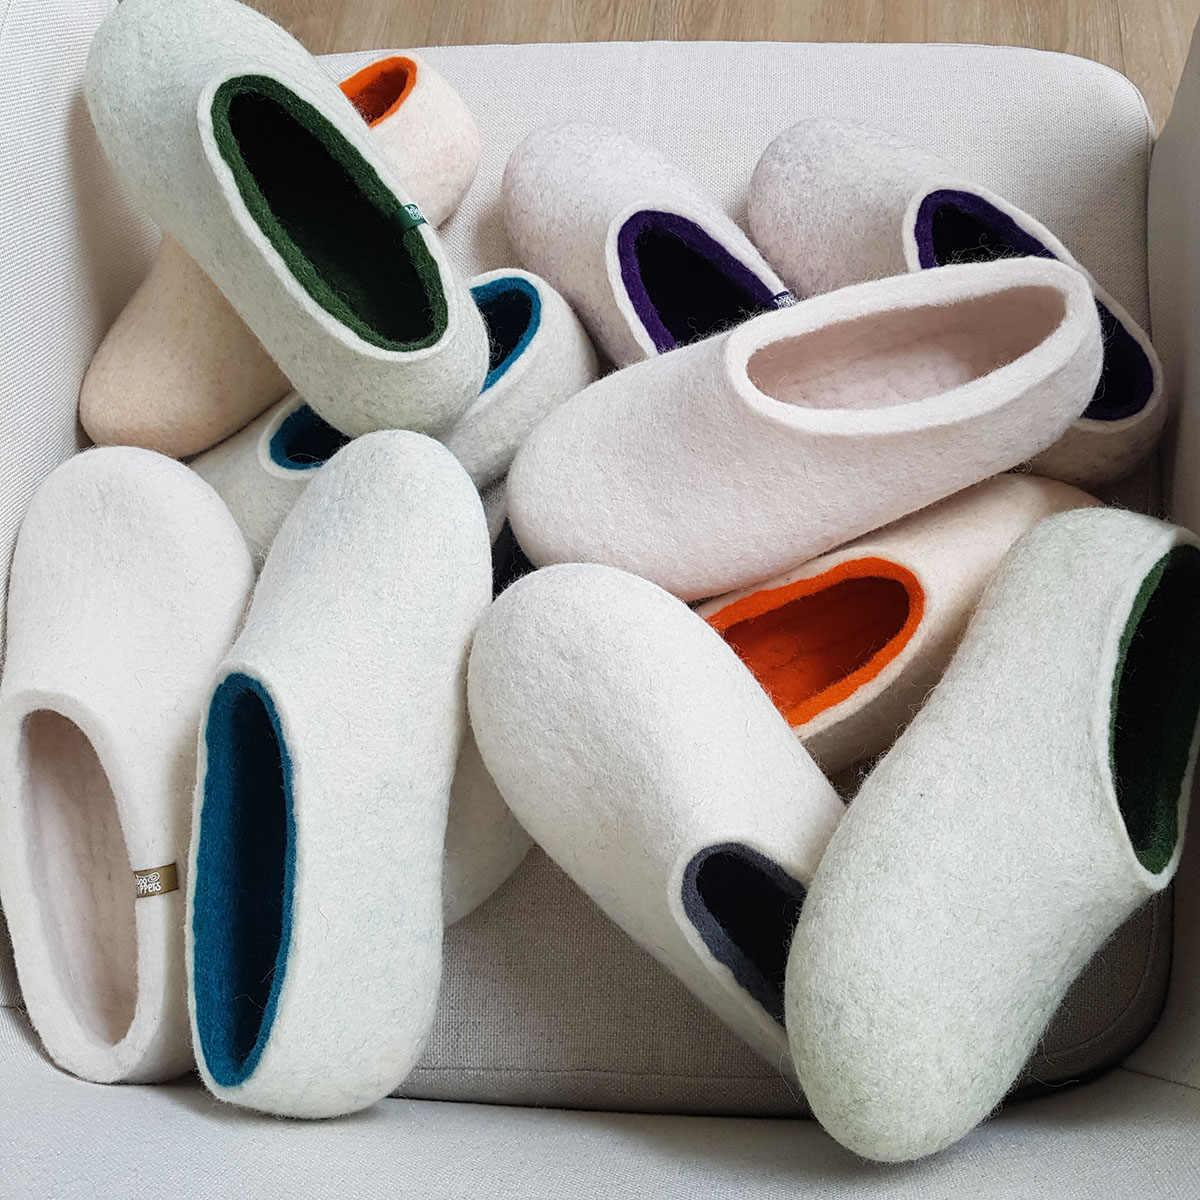 wooppers ARIA collection of white slippers